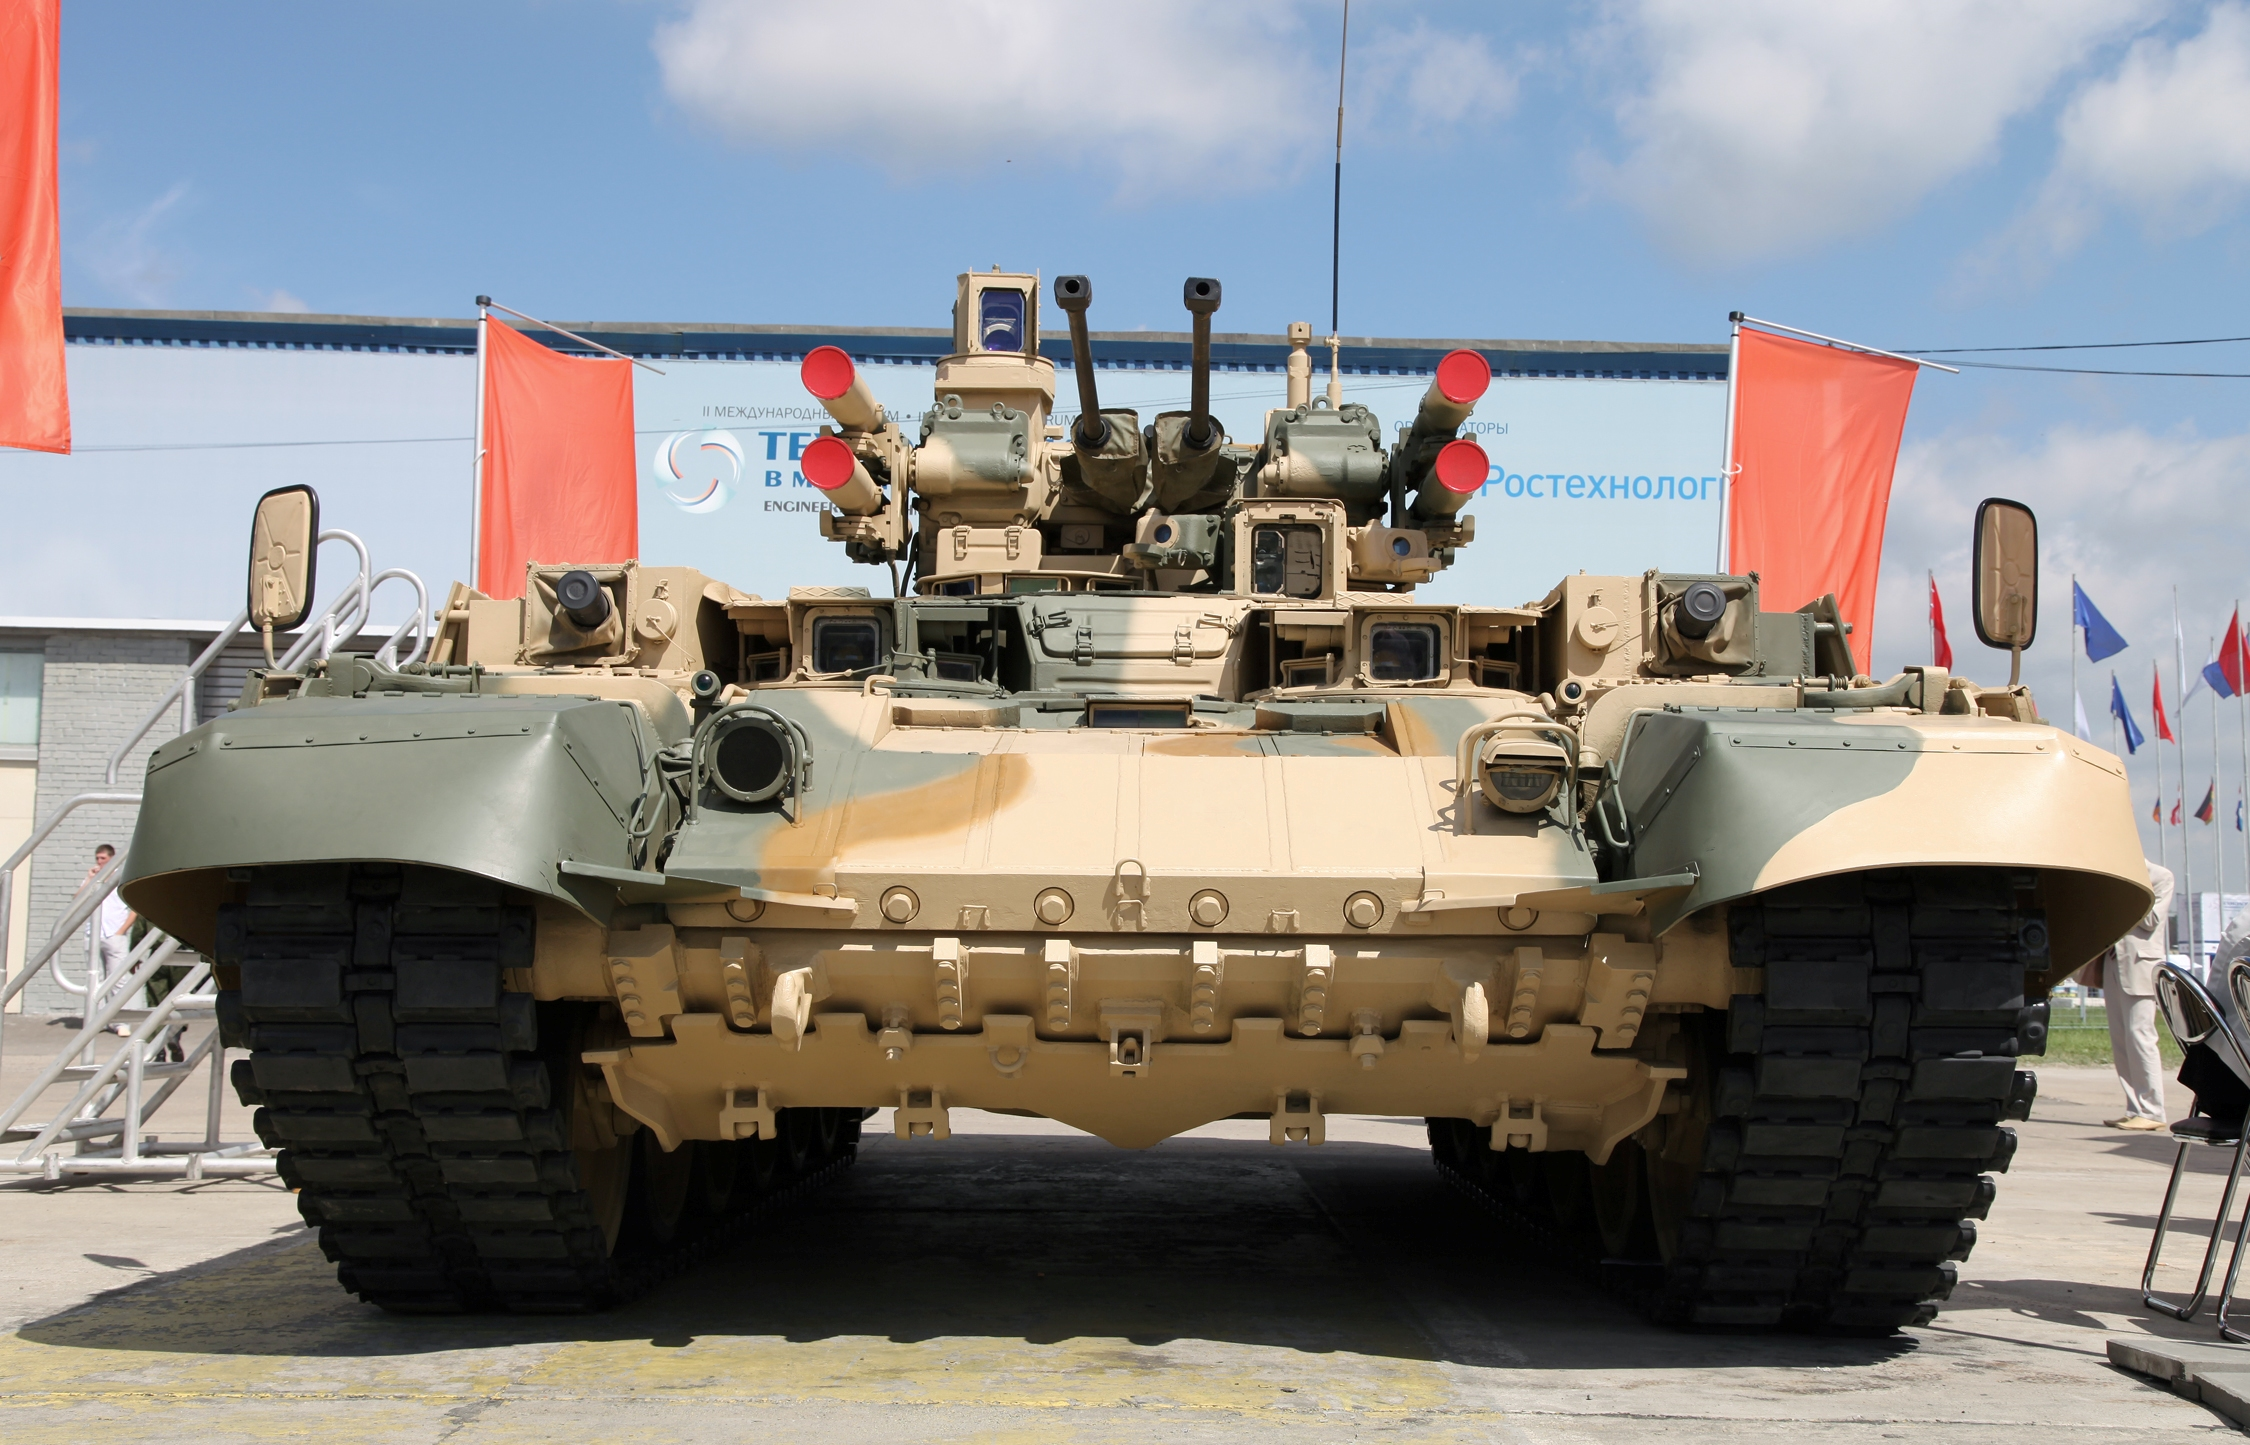 T-72 ΜΒΤ modernisation and variants - Page 7 BMPT_at_Engineering_Technologies_2012_(1)